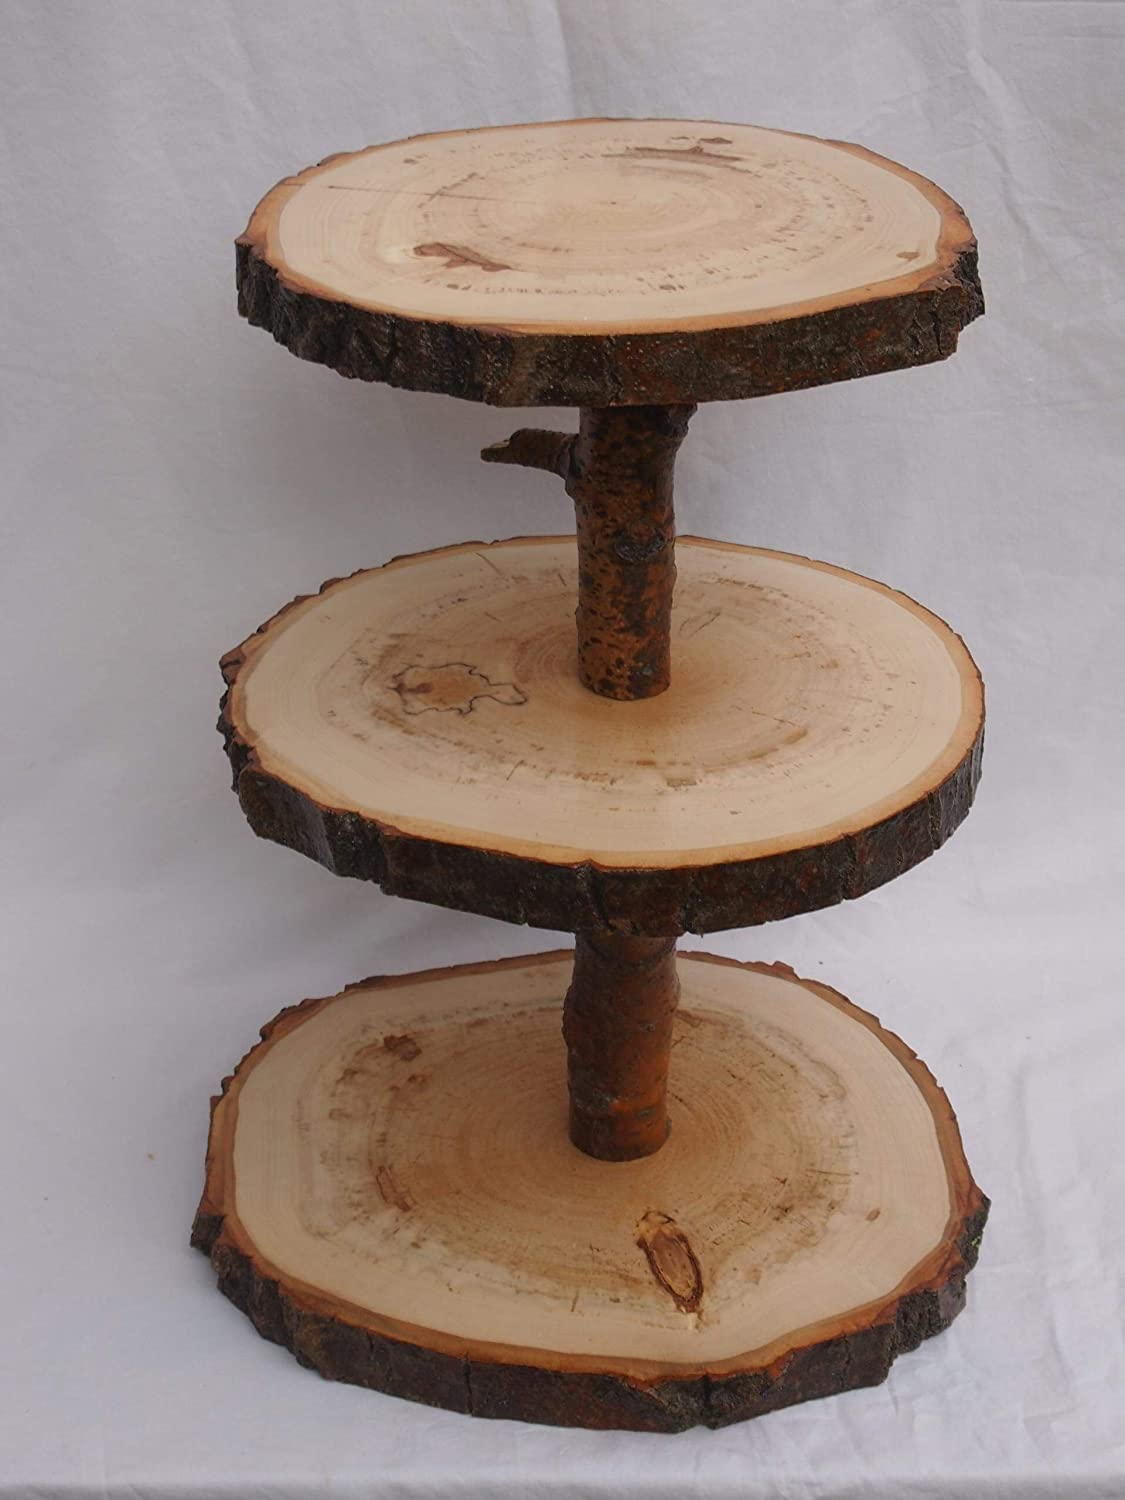 3 tier wood slice display stand, cupcake stand, dessert display, rustic event/wedding